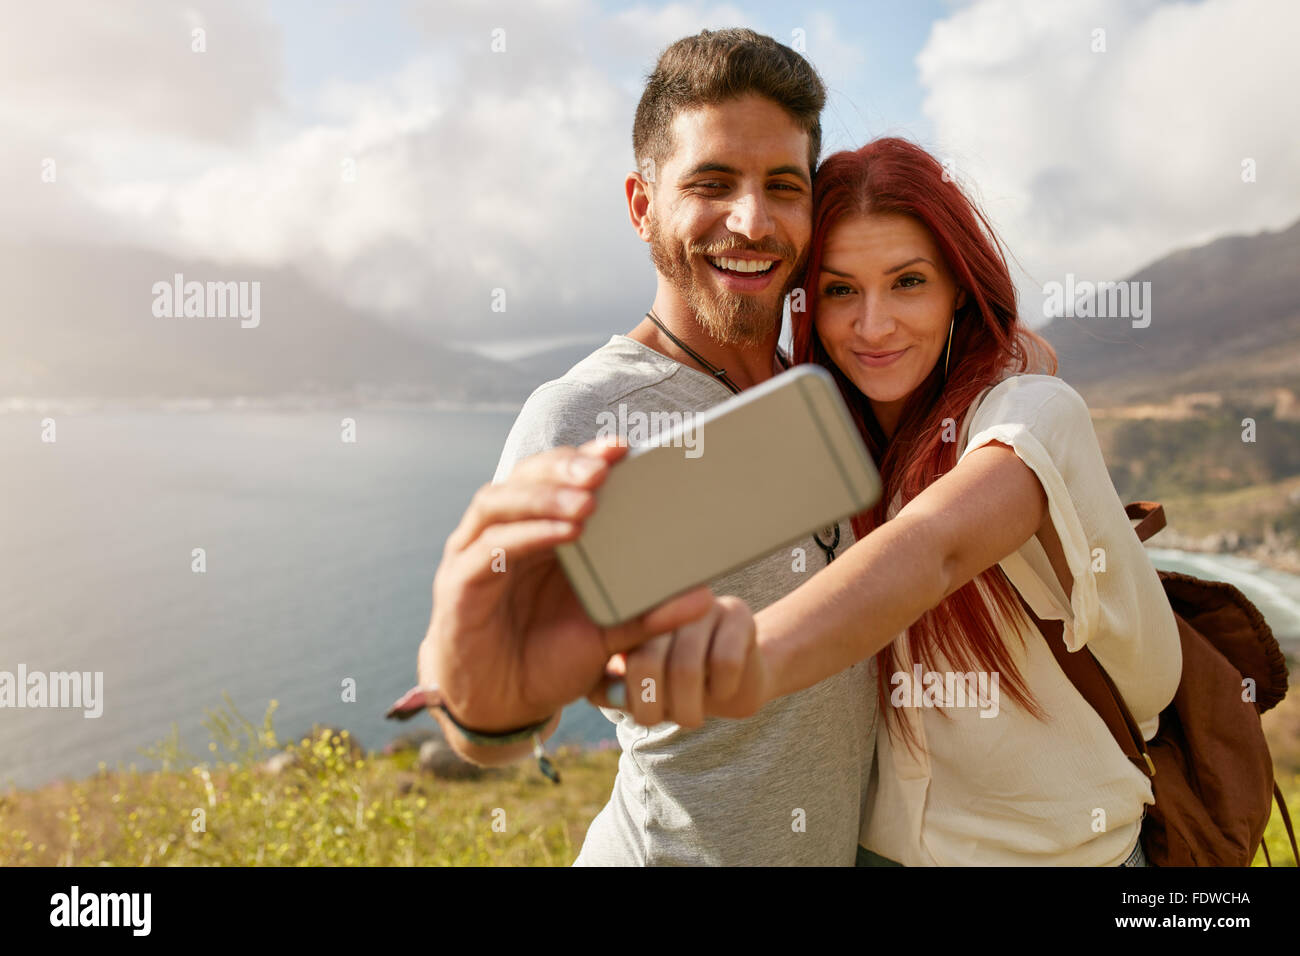 Young couple hiking taking selfie with smart phone. Happy young man and woman taking self portrait with mountain - Stock Image